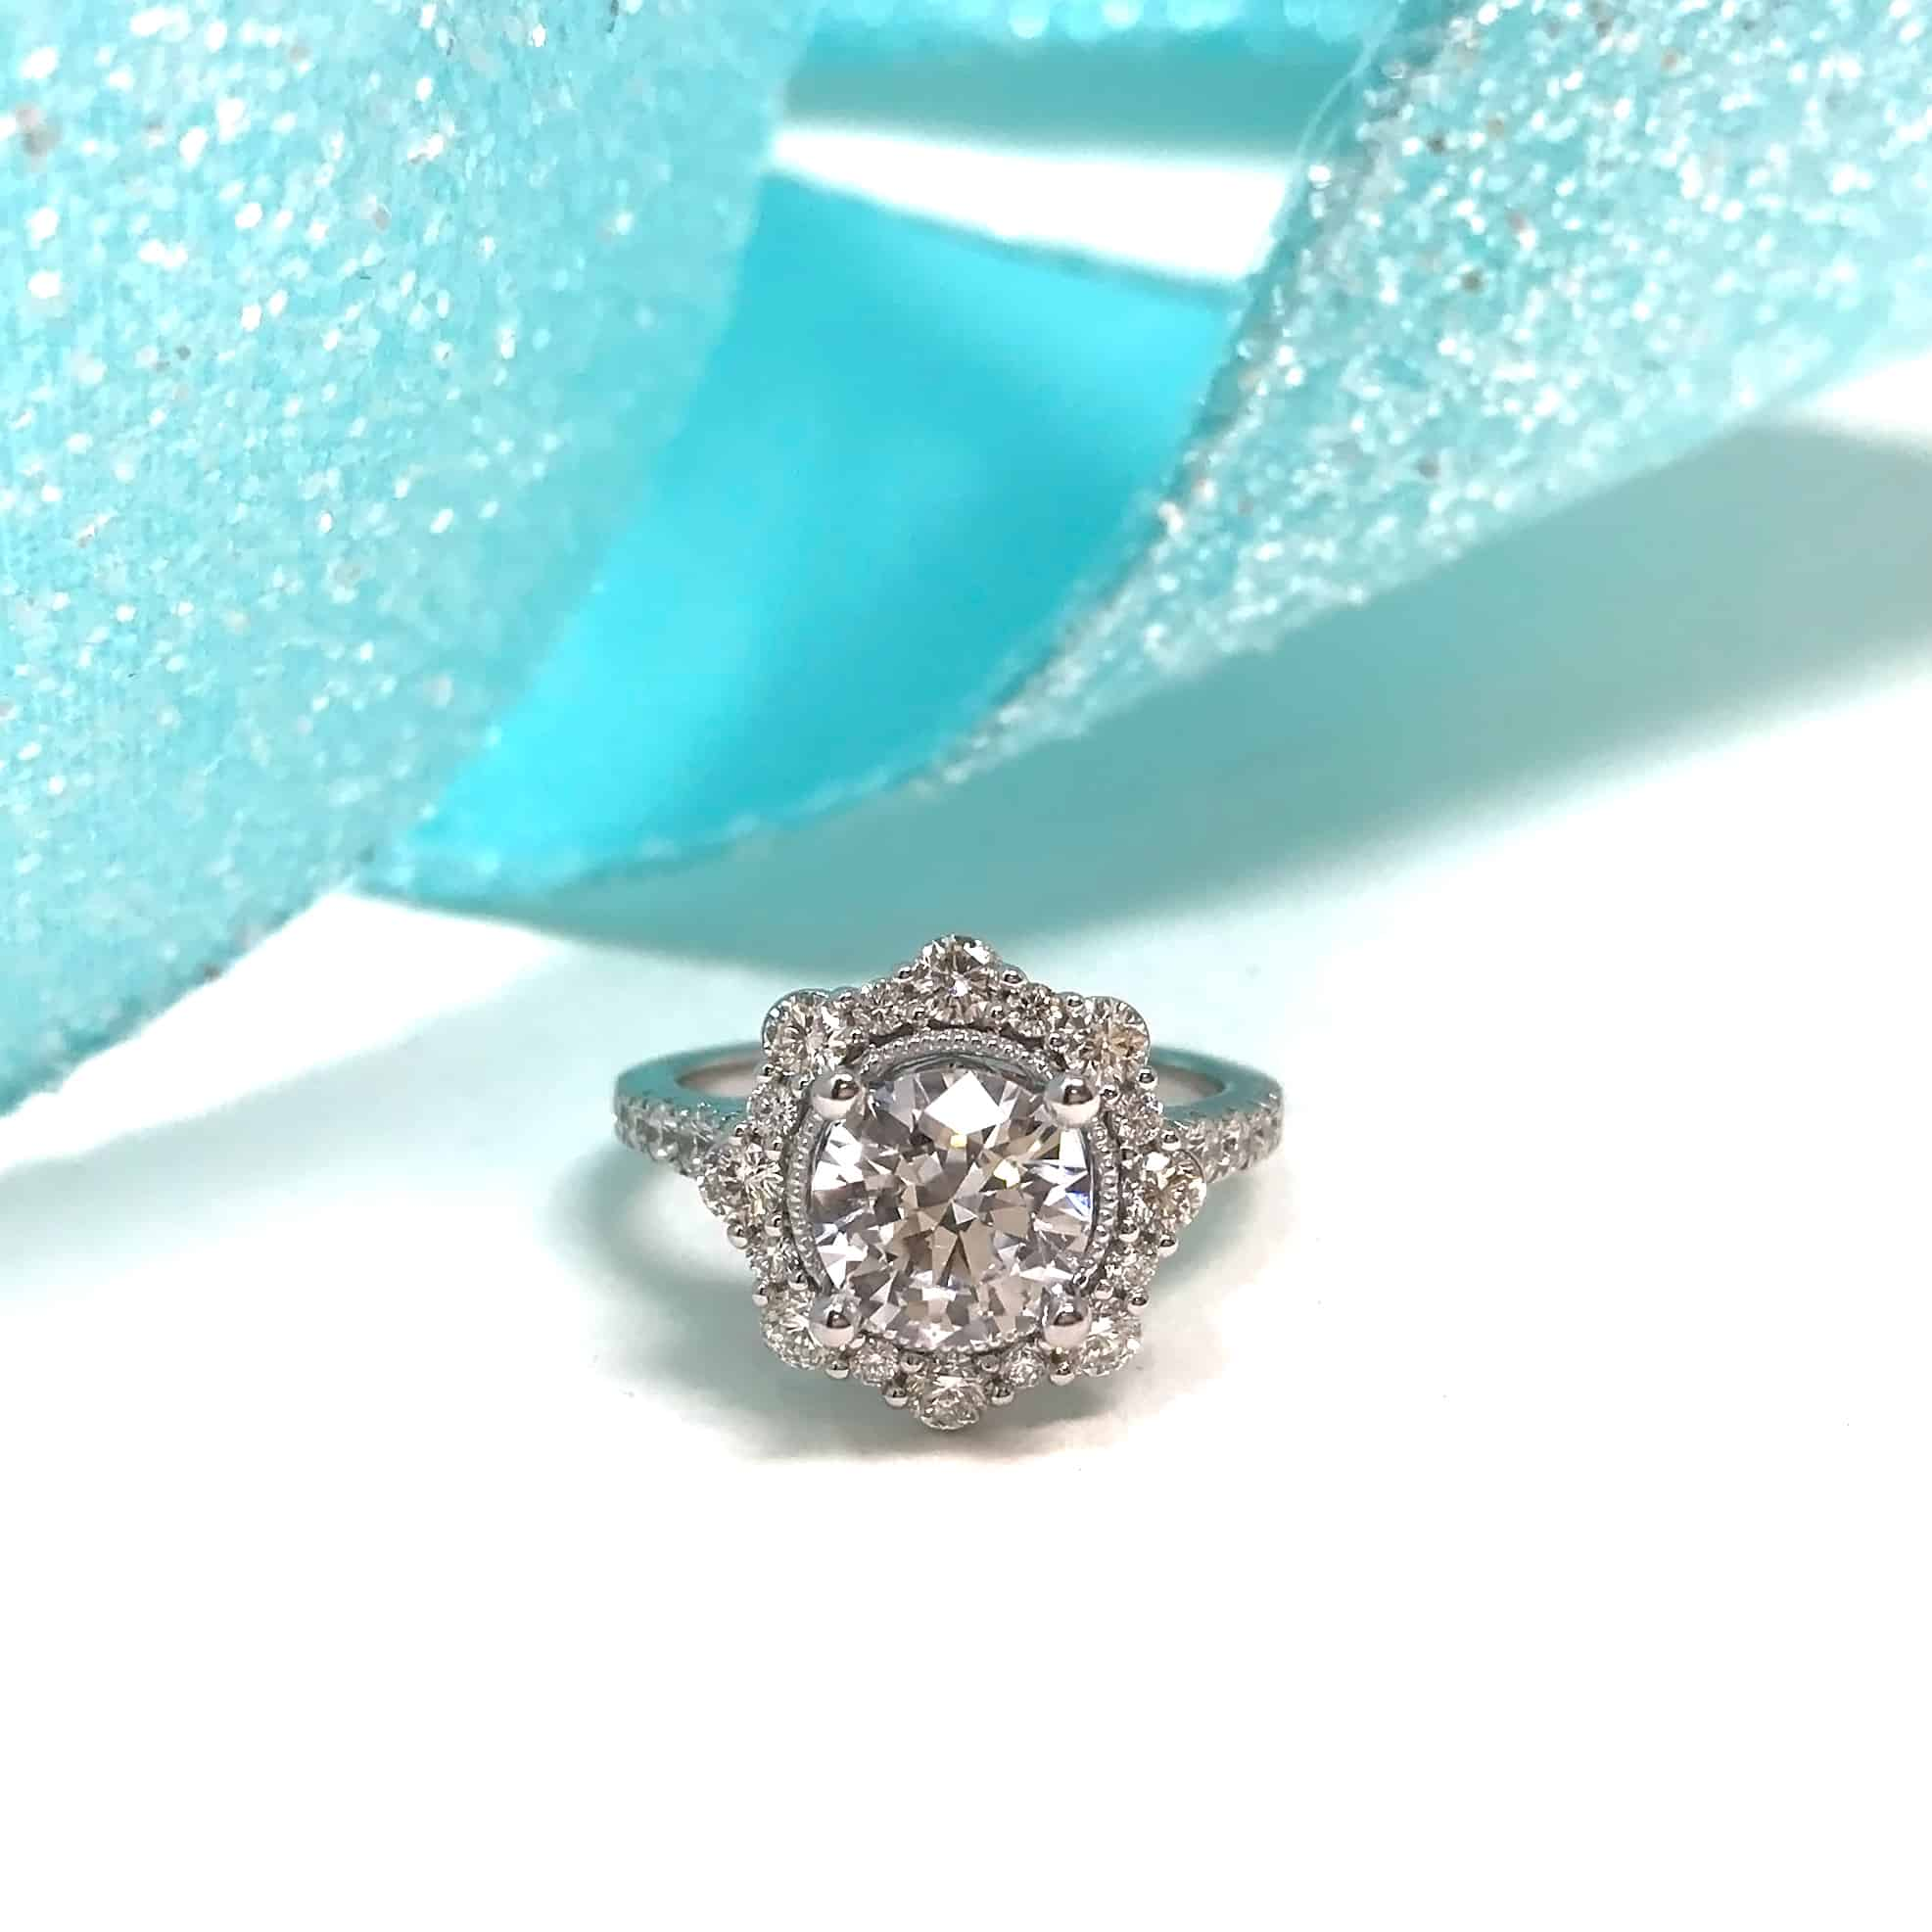 New Twist To The Diamond Halo Ring - Robbins Brothers Blog